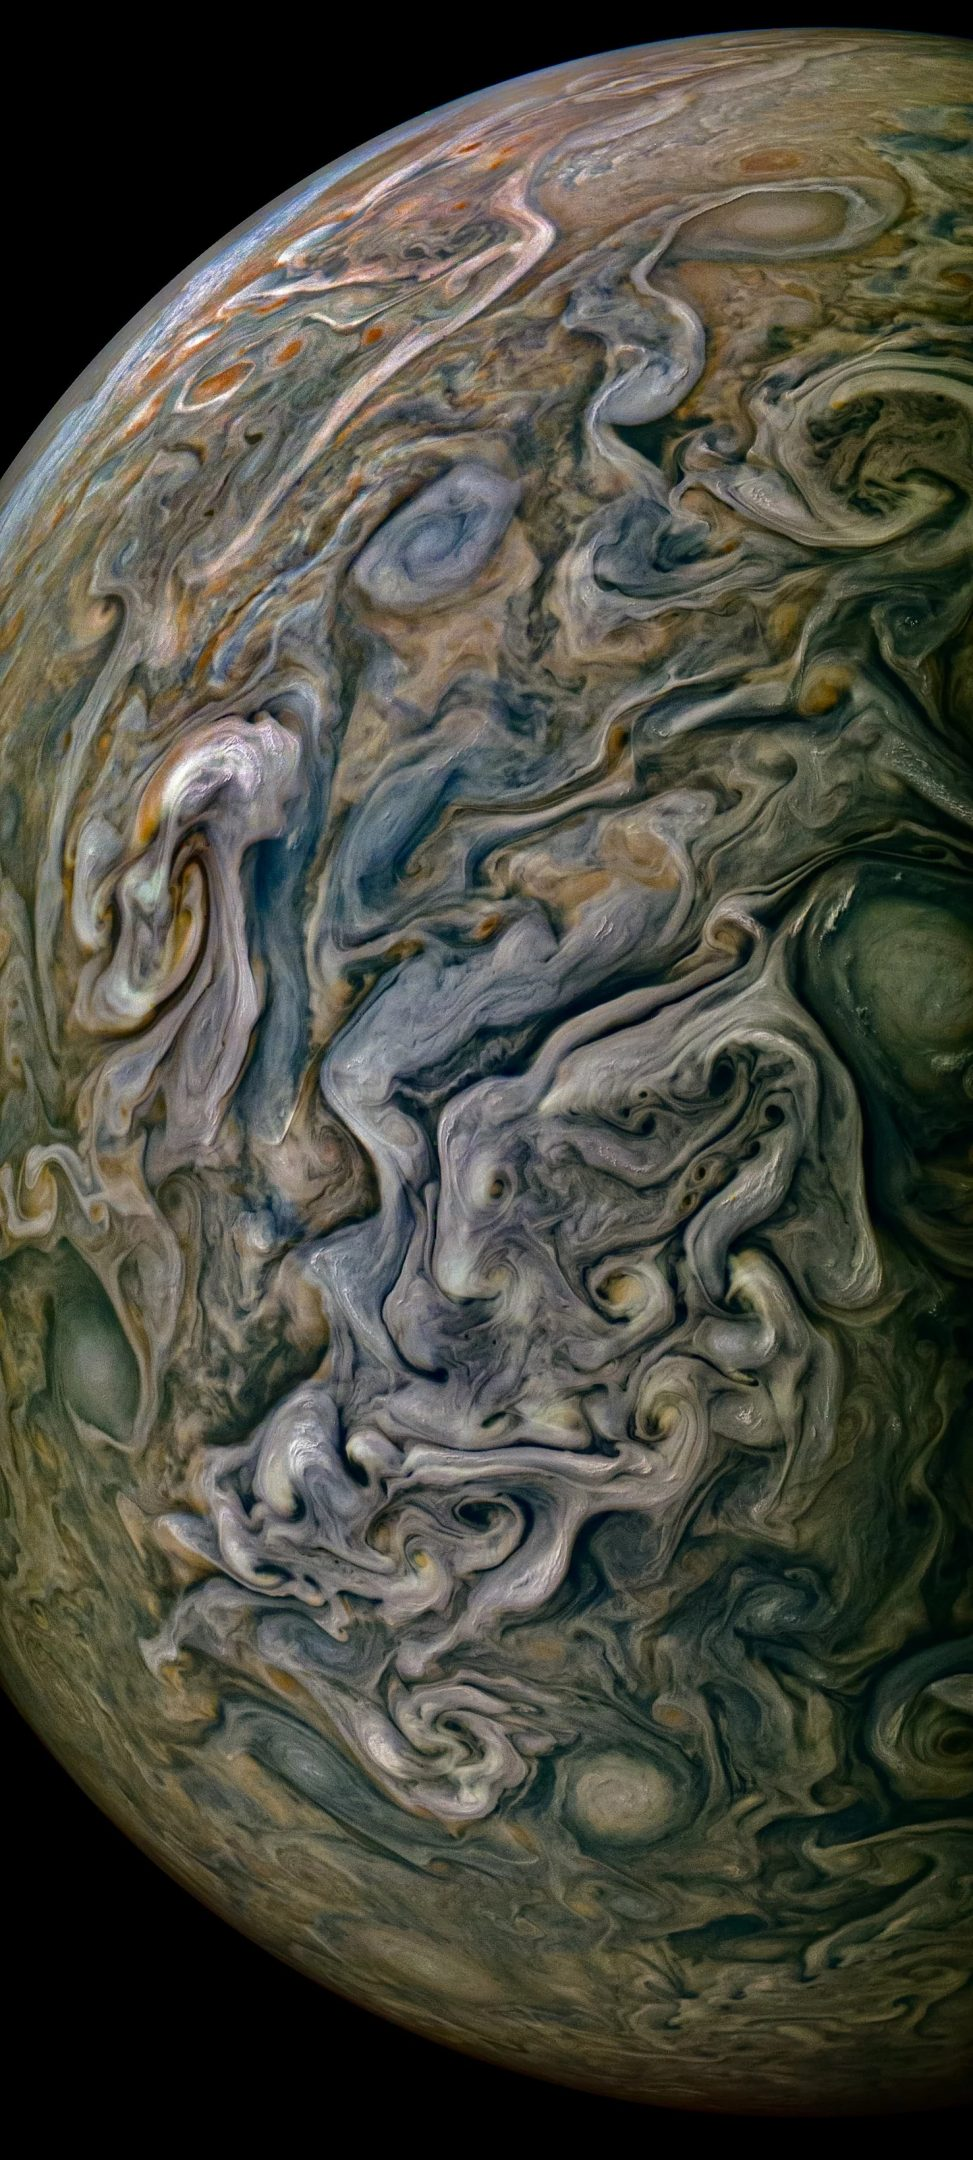 Jupiter photographed by NASA's Juno spacecraft last Friday